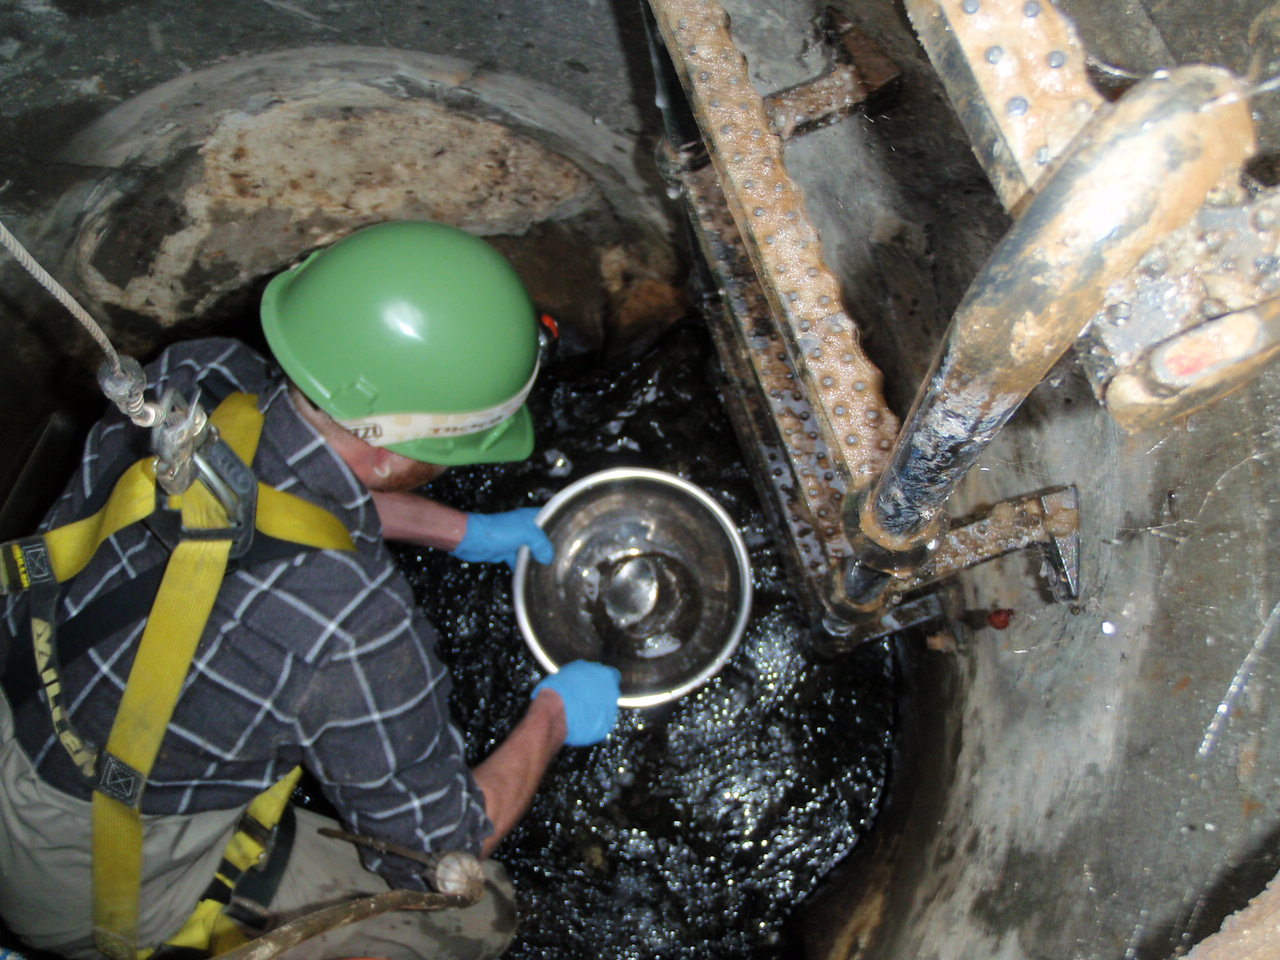 Sediment collection in a storm sewer manhole